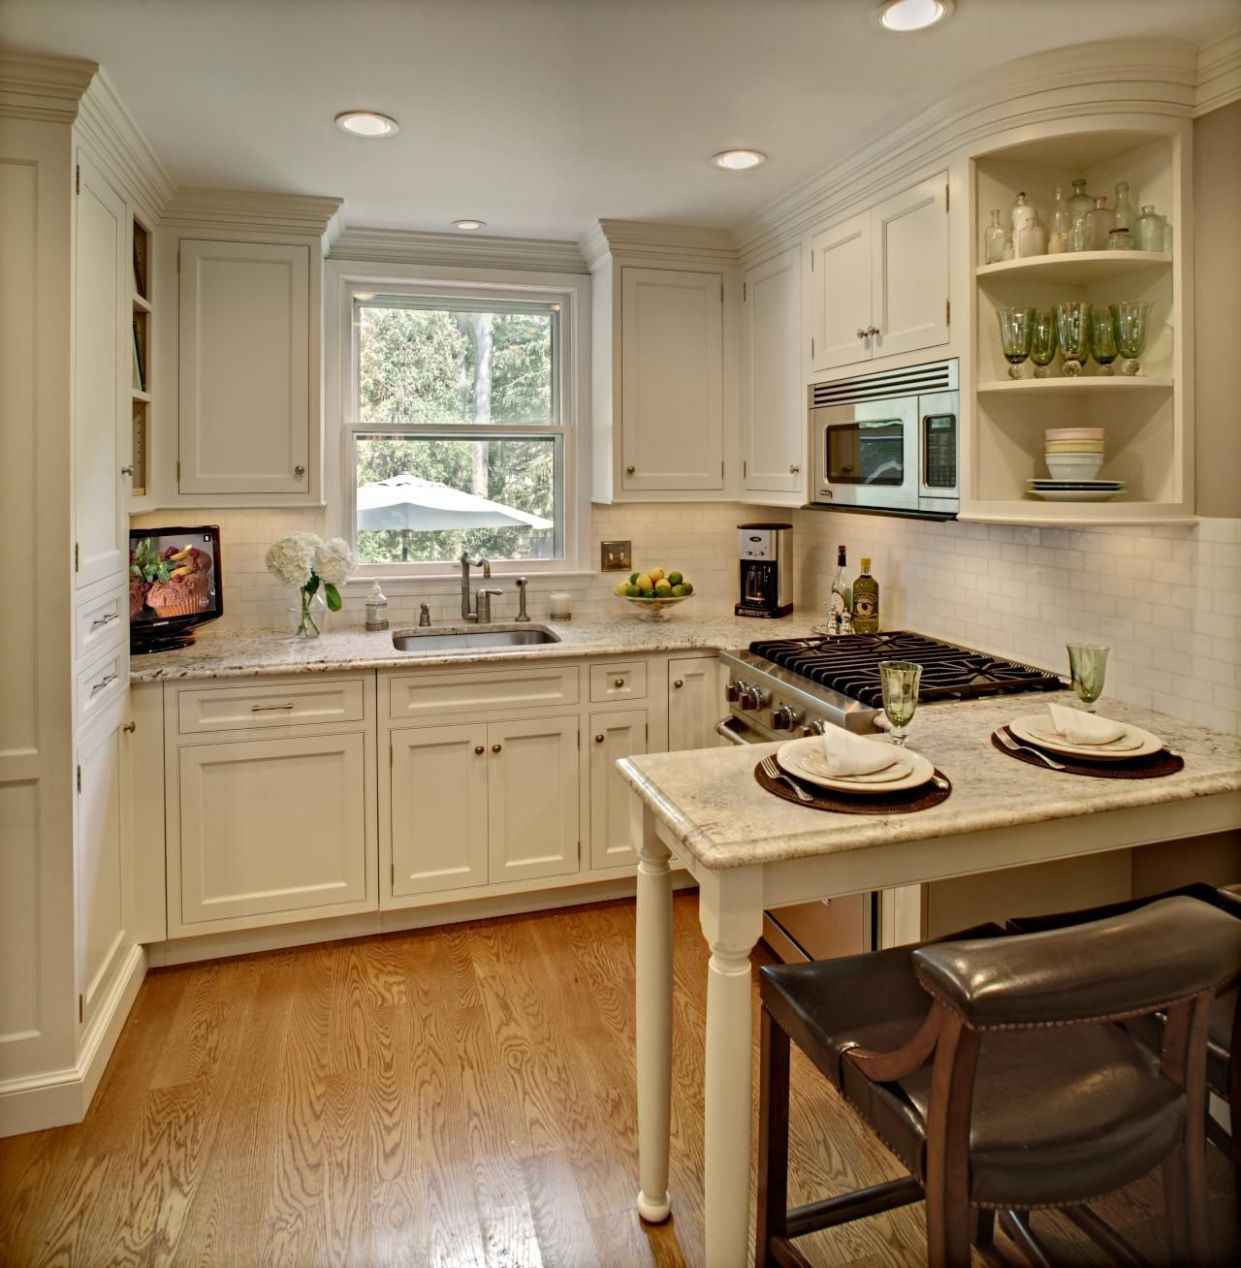 Small Kitchen (With images) | Square kitchen layout, Kitchen ..